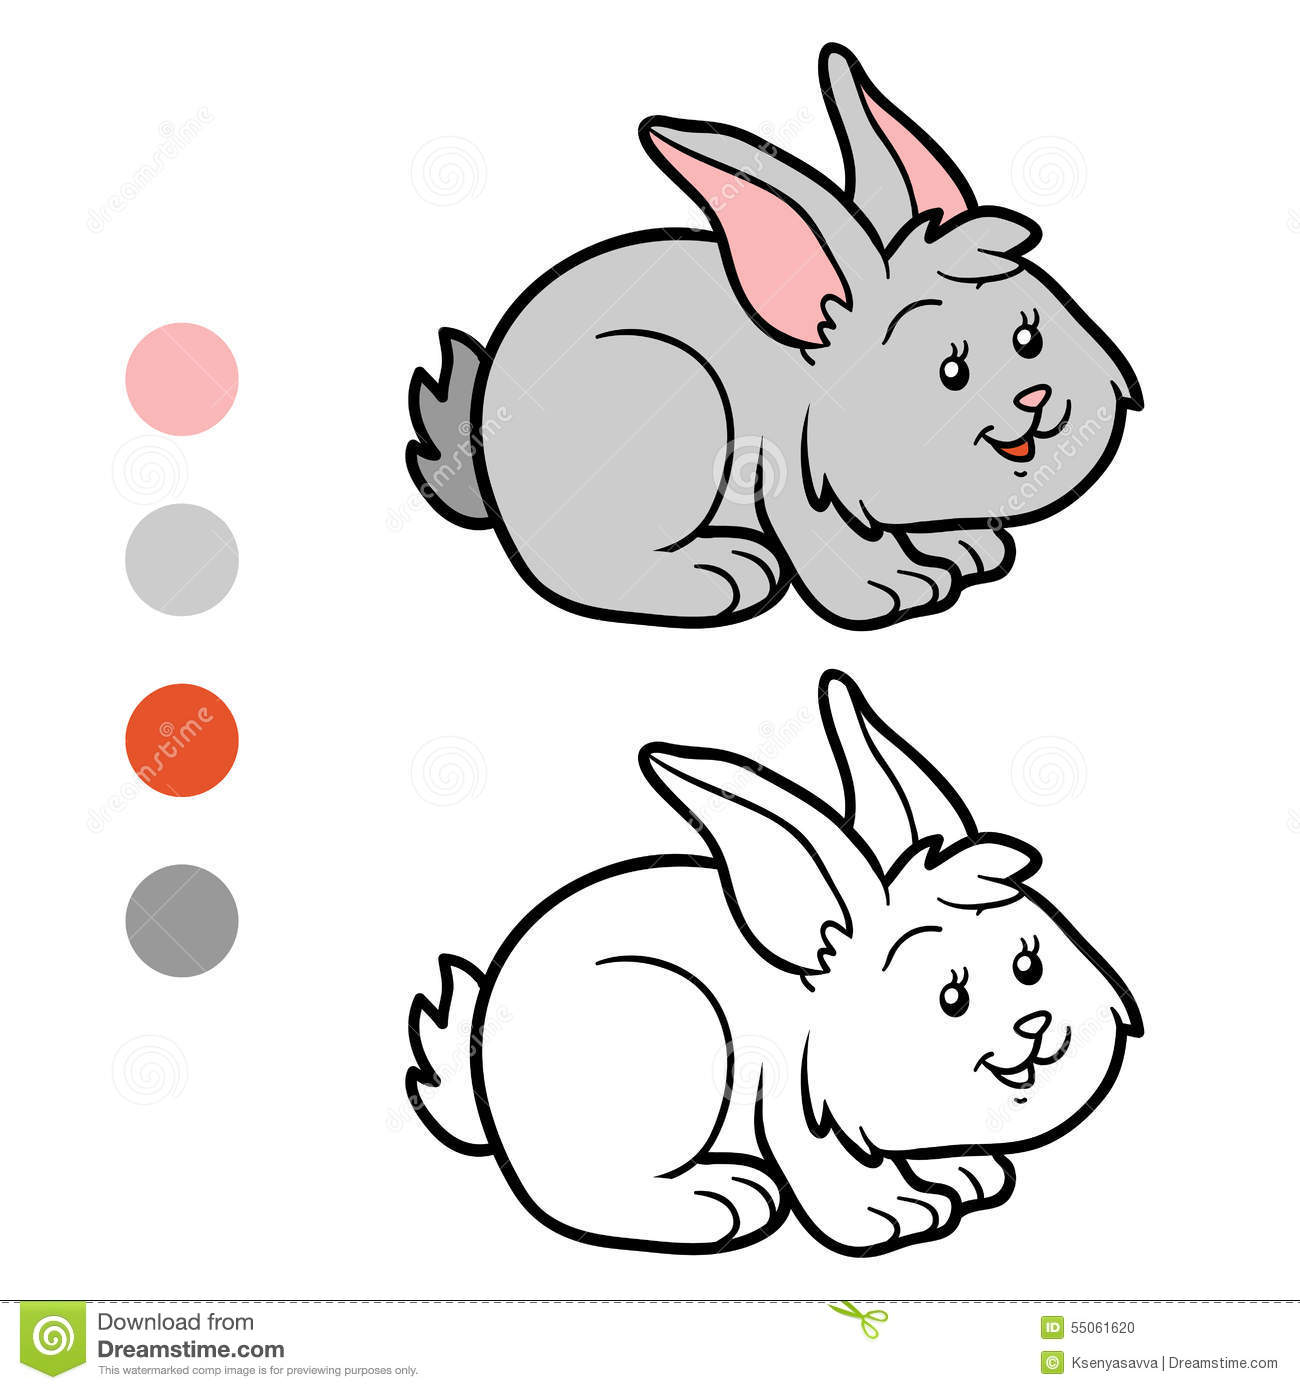 coloring book rabbit pictures : Coloring Book Rabbit